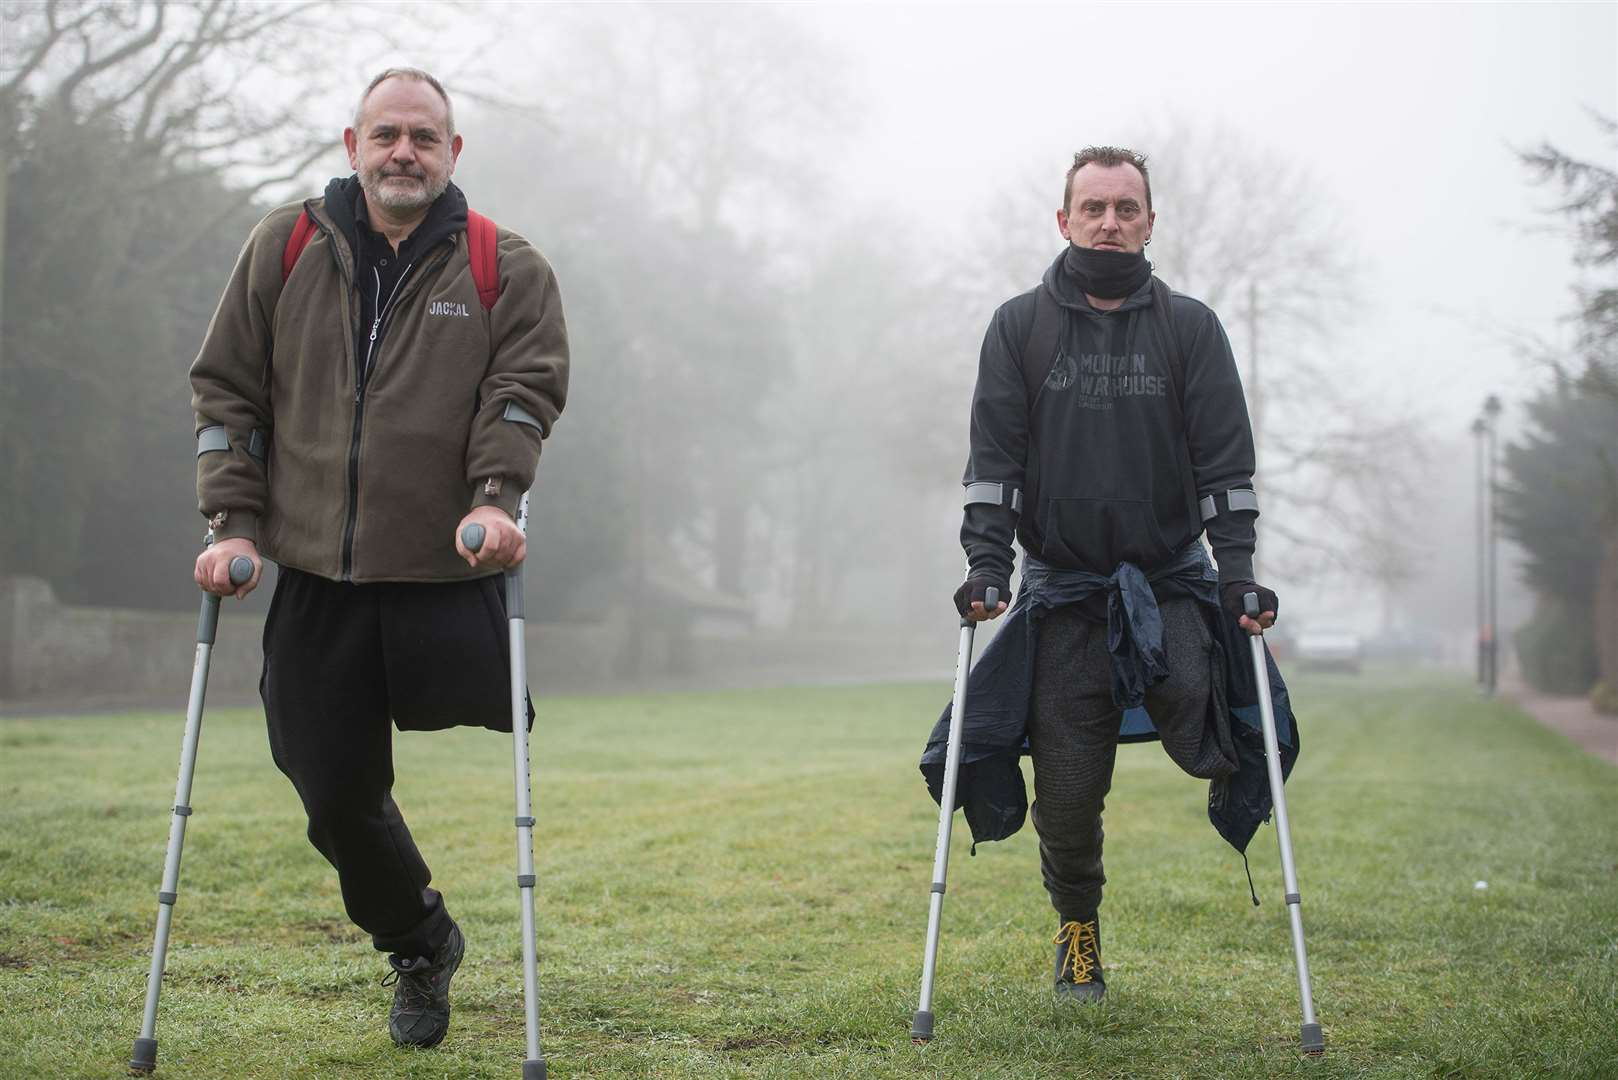 The pair aim to do the challenge, set to start on March 1, by walking on crutches and using rowing machines with their individual distances totalled on an app.. Picture by Mark Westley